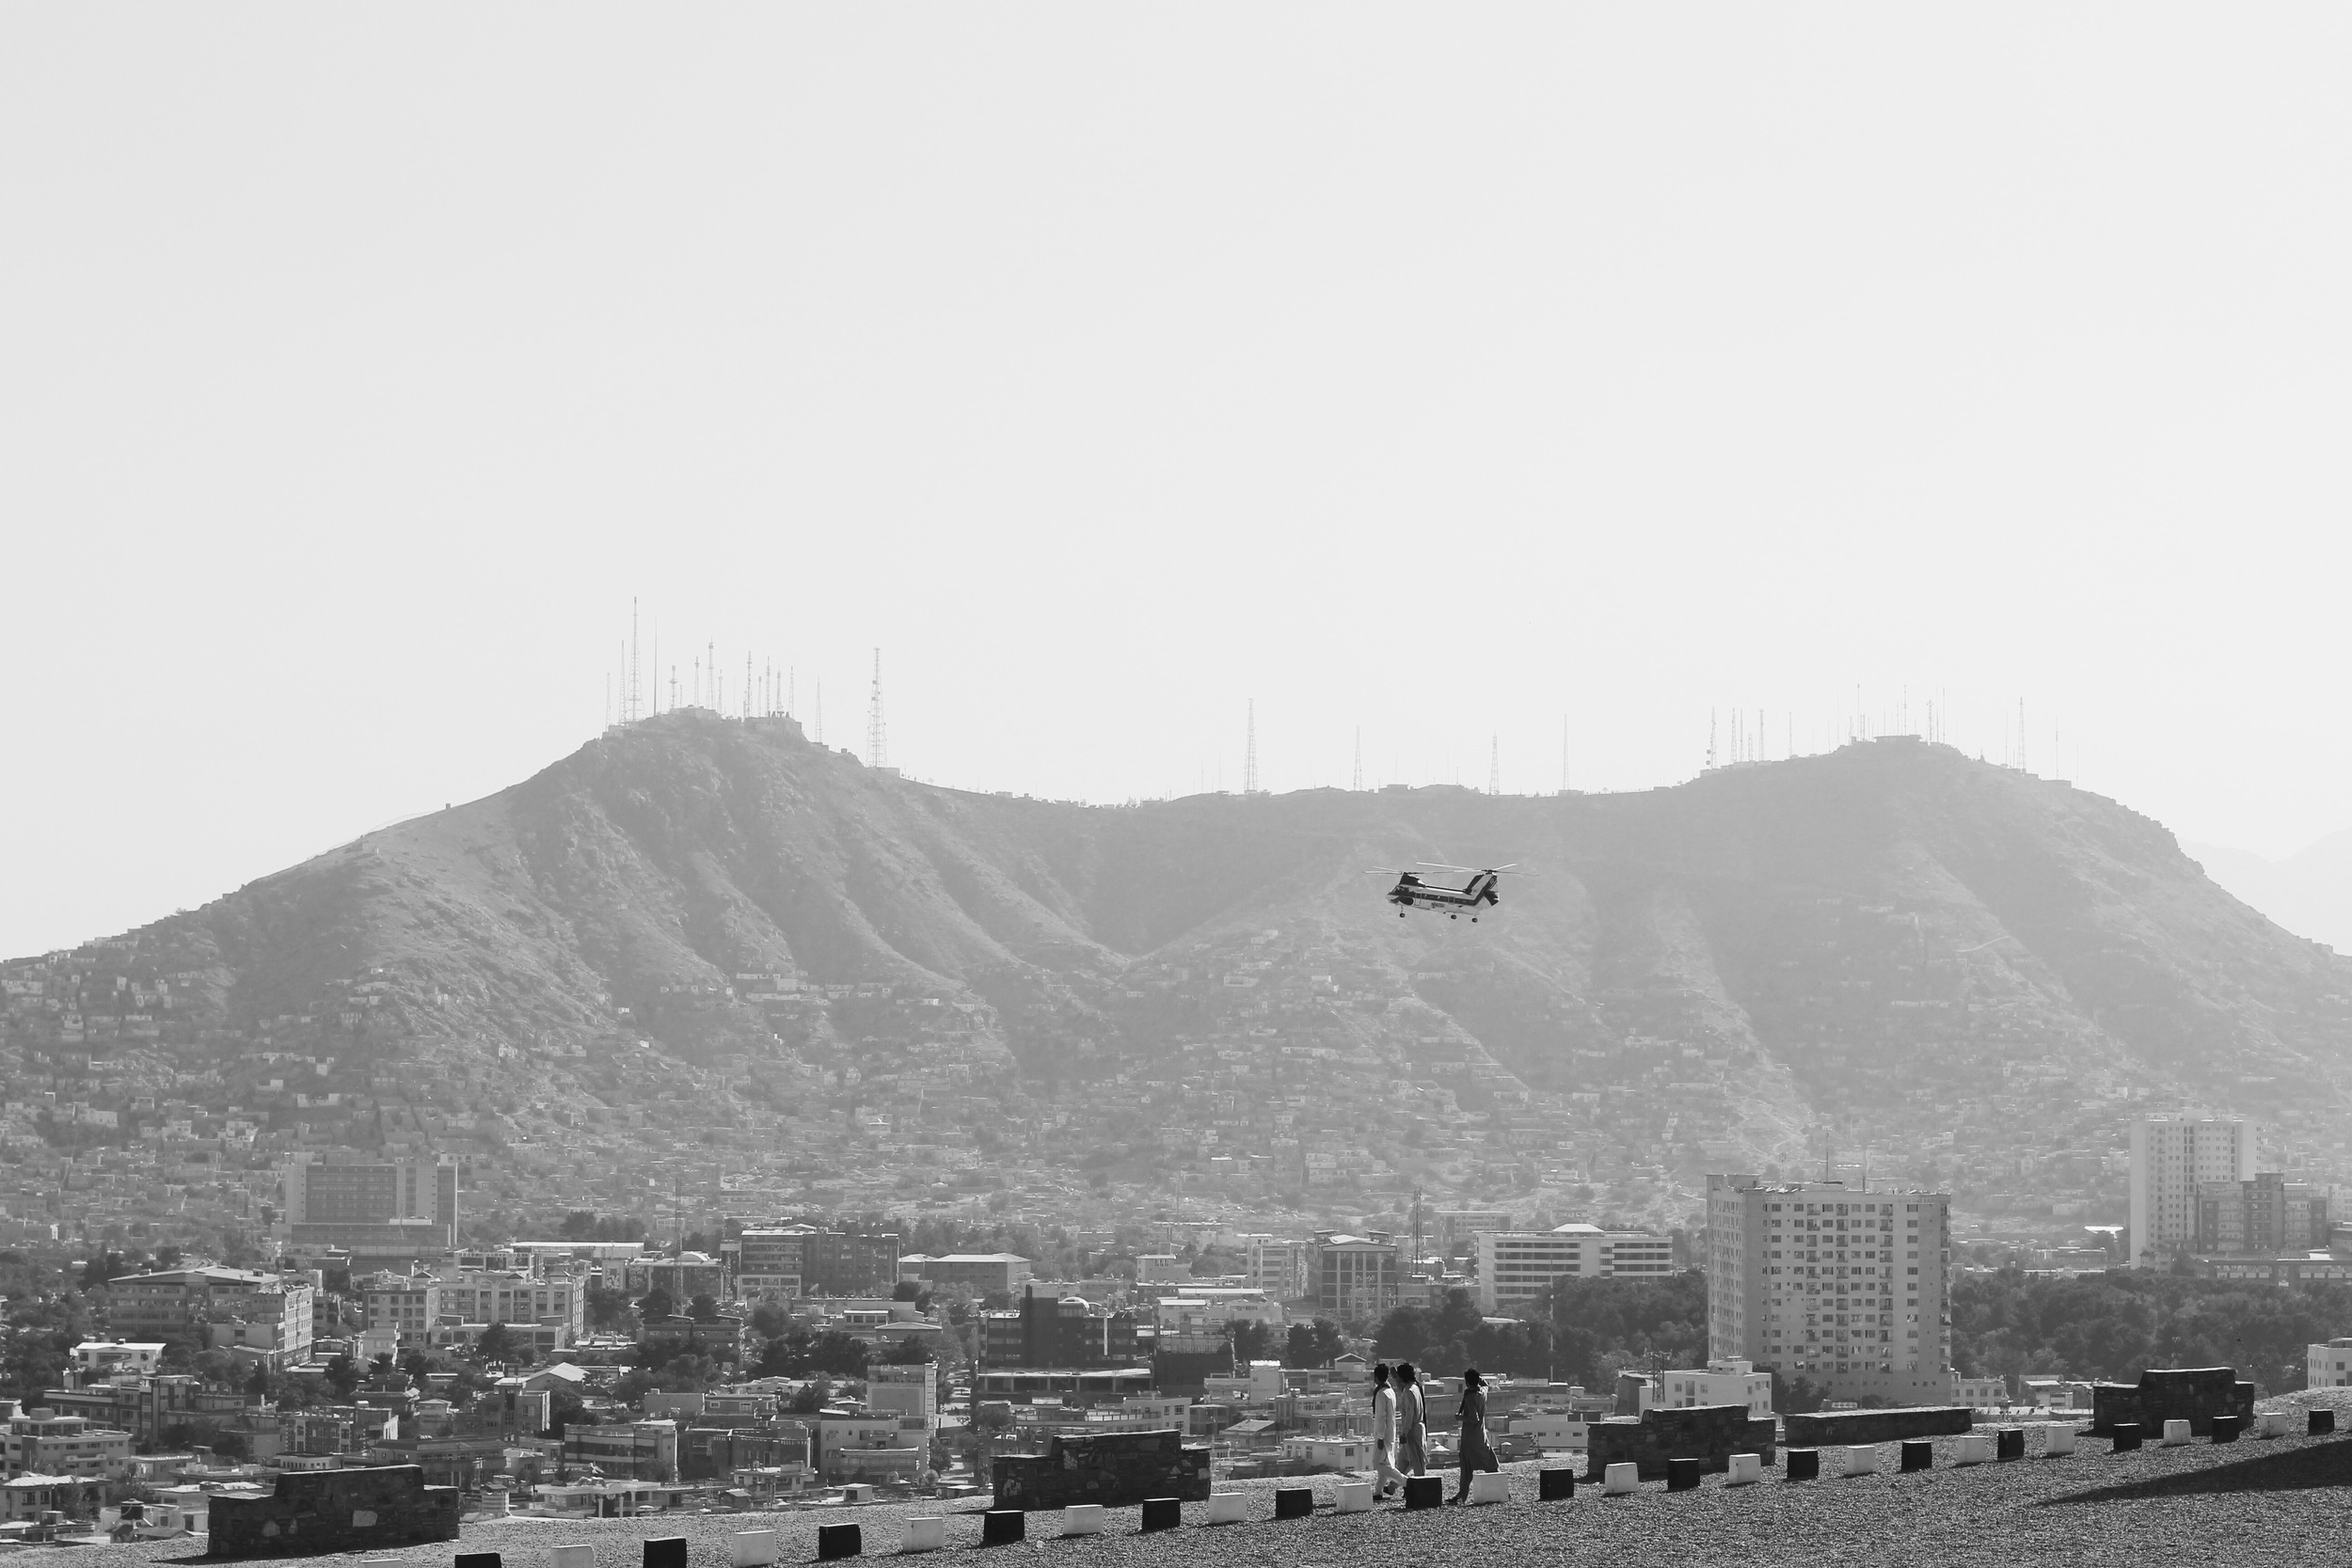 Kabul, Afghanistan. Photo taken from Swimming Pool Hill, September 2015.